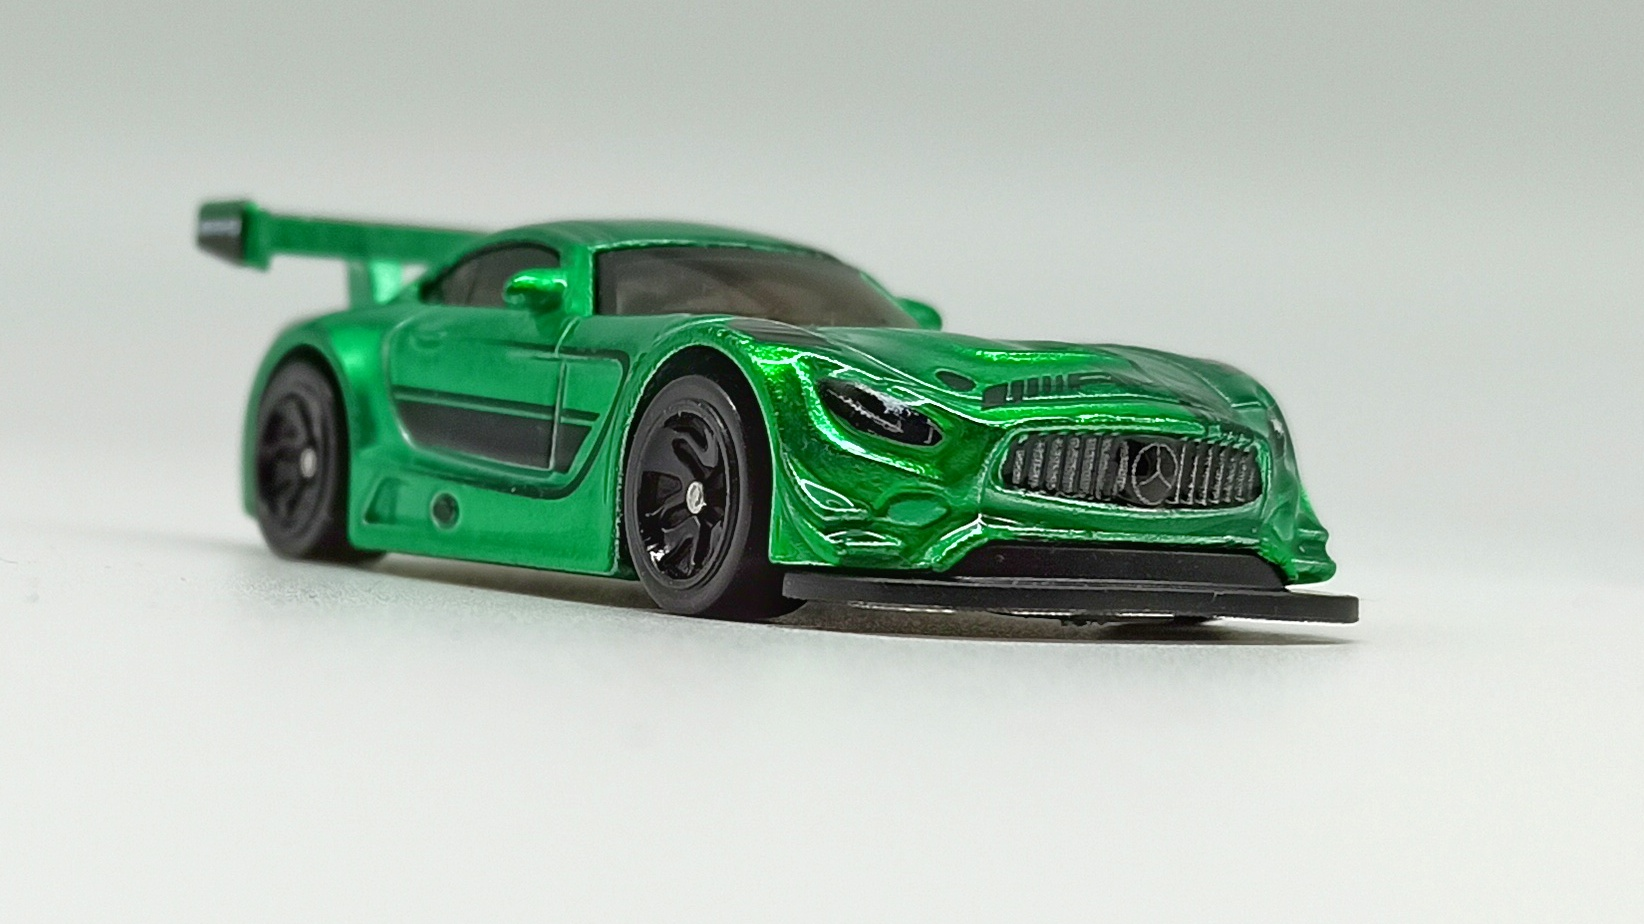 Hot Wheels id '16 Mercedes-AMG GT3 (GML21) 2021 Factory Fresh (03/04) spectraflame green front angle